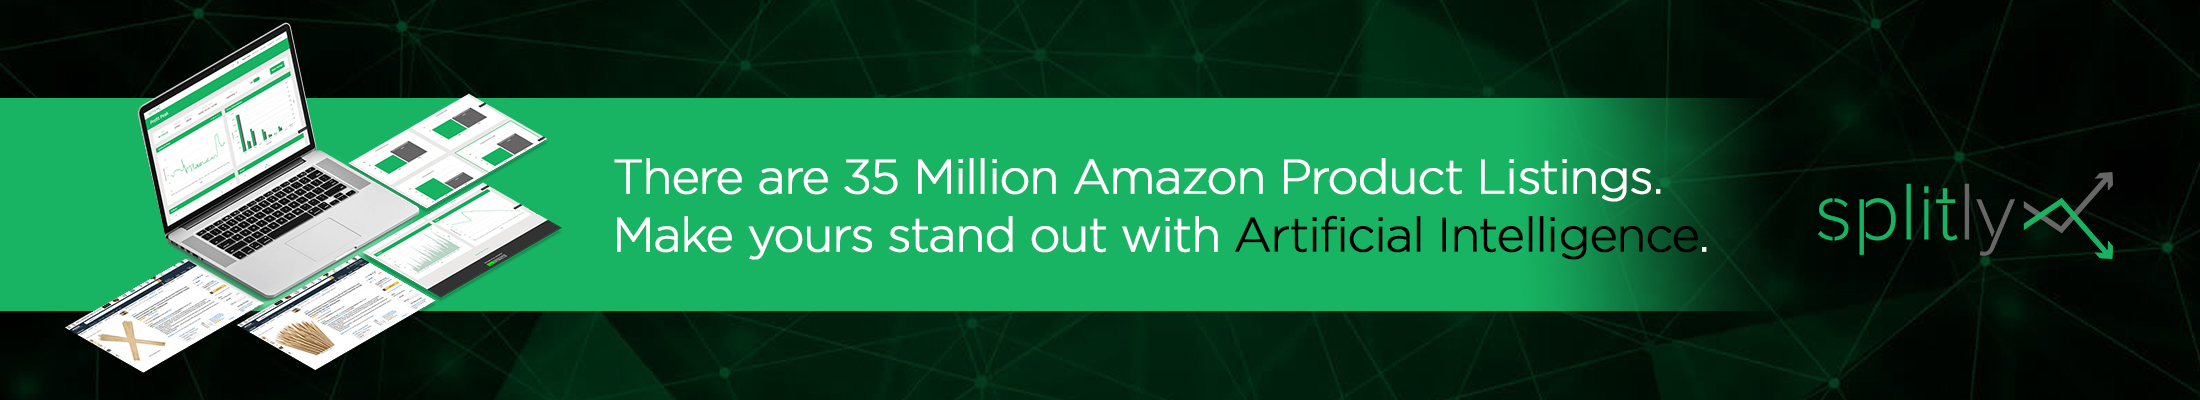 Splitly - There are 35 million amazon product listings. Make yours tsand out with artificial intelligence.